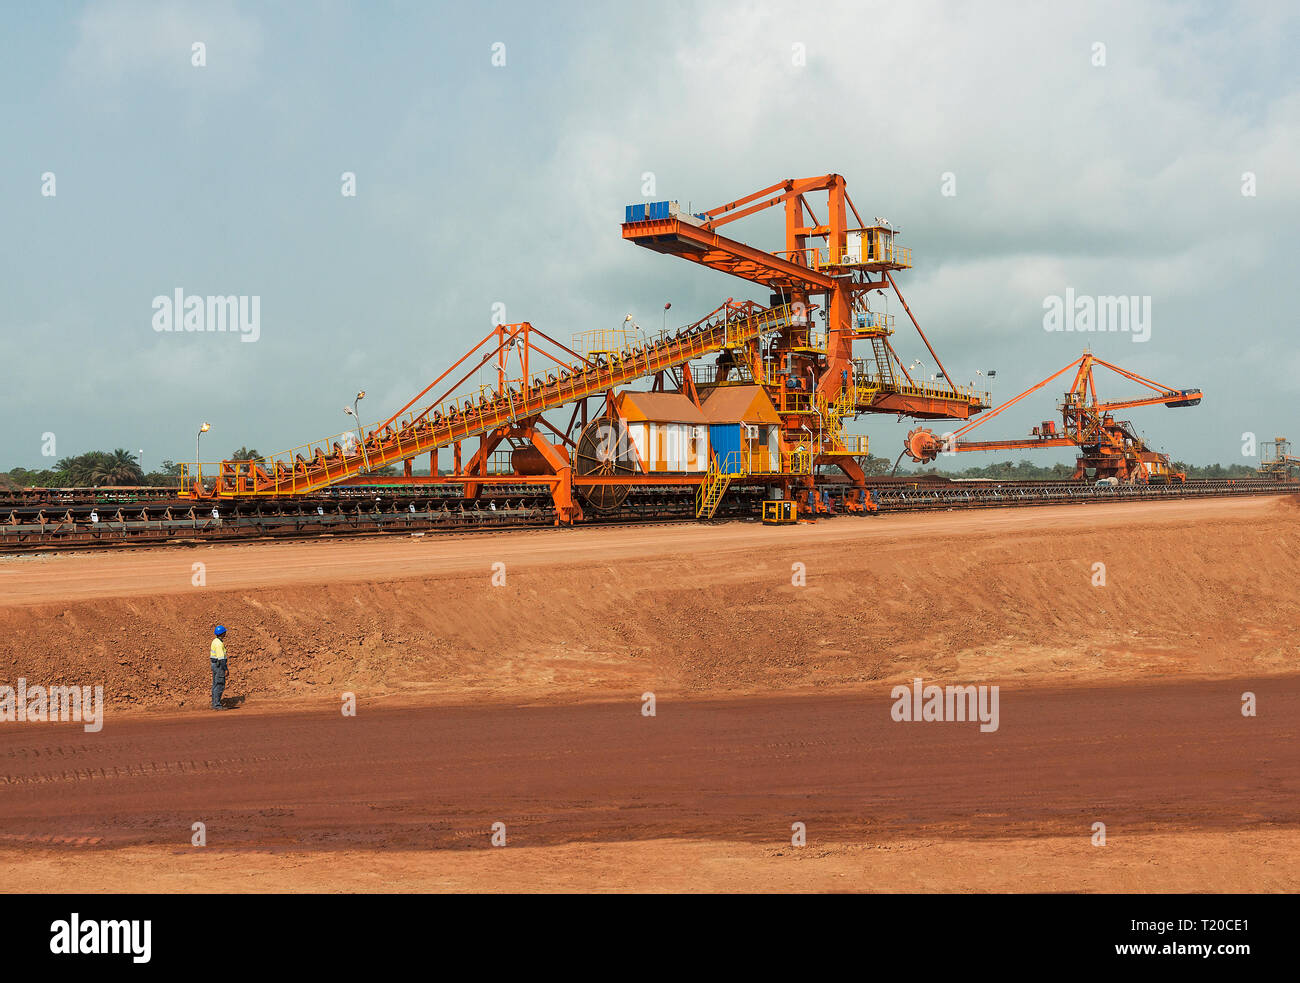 Operations Stock Photos & Operations Stock Images - Alamy